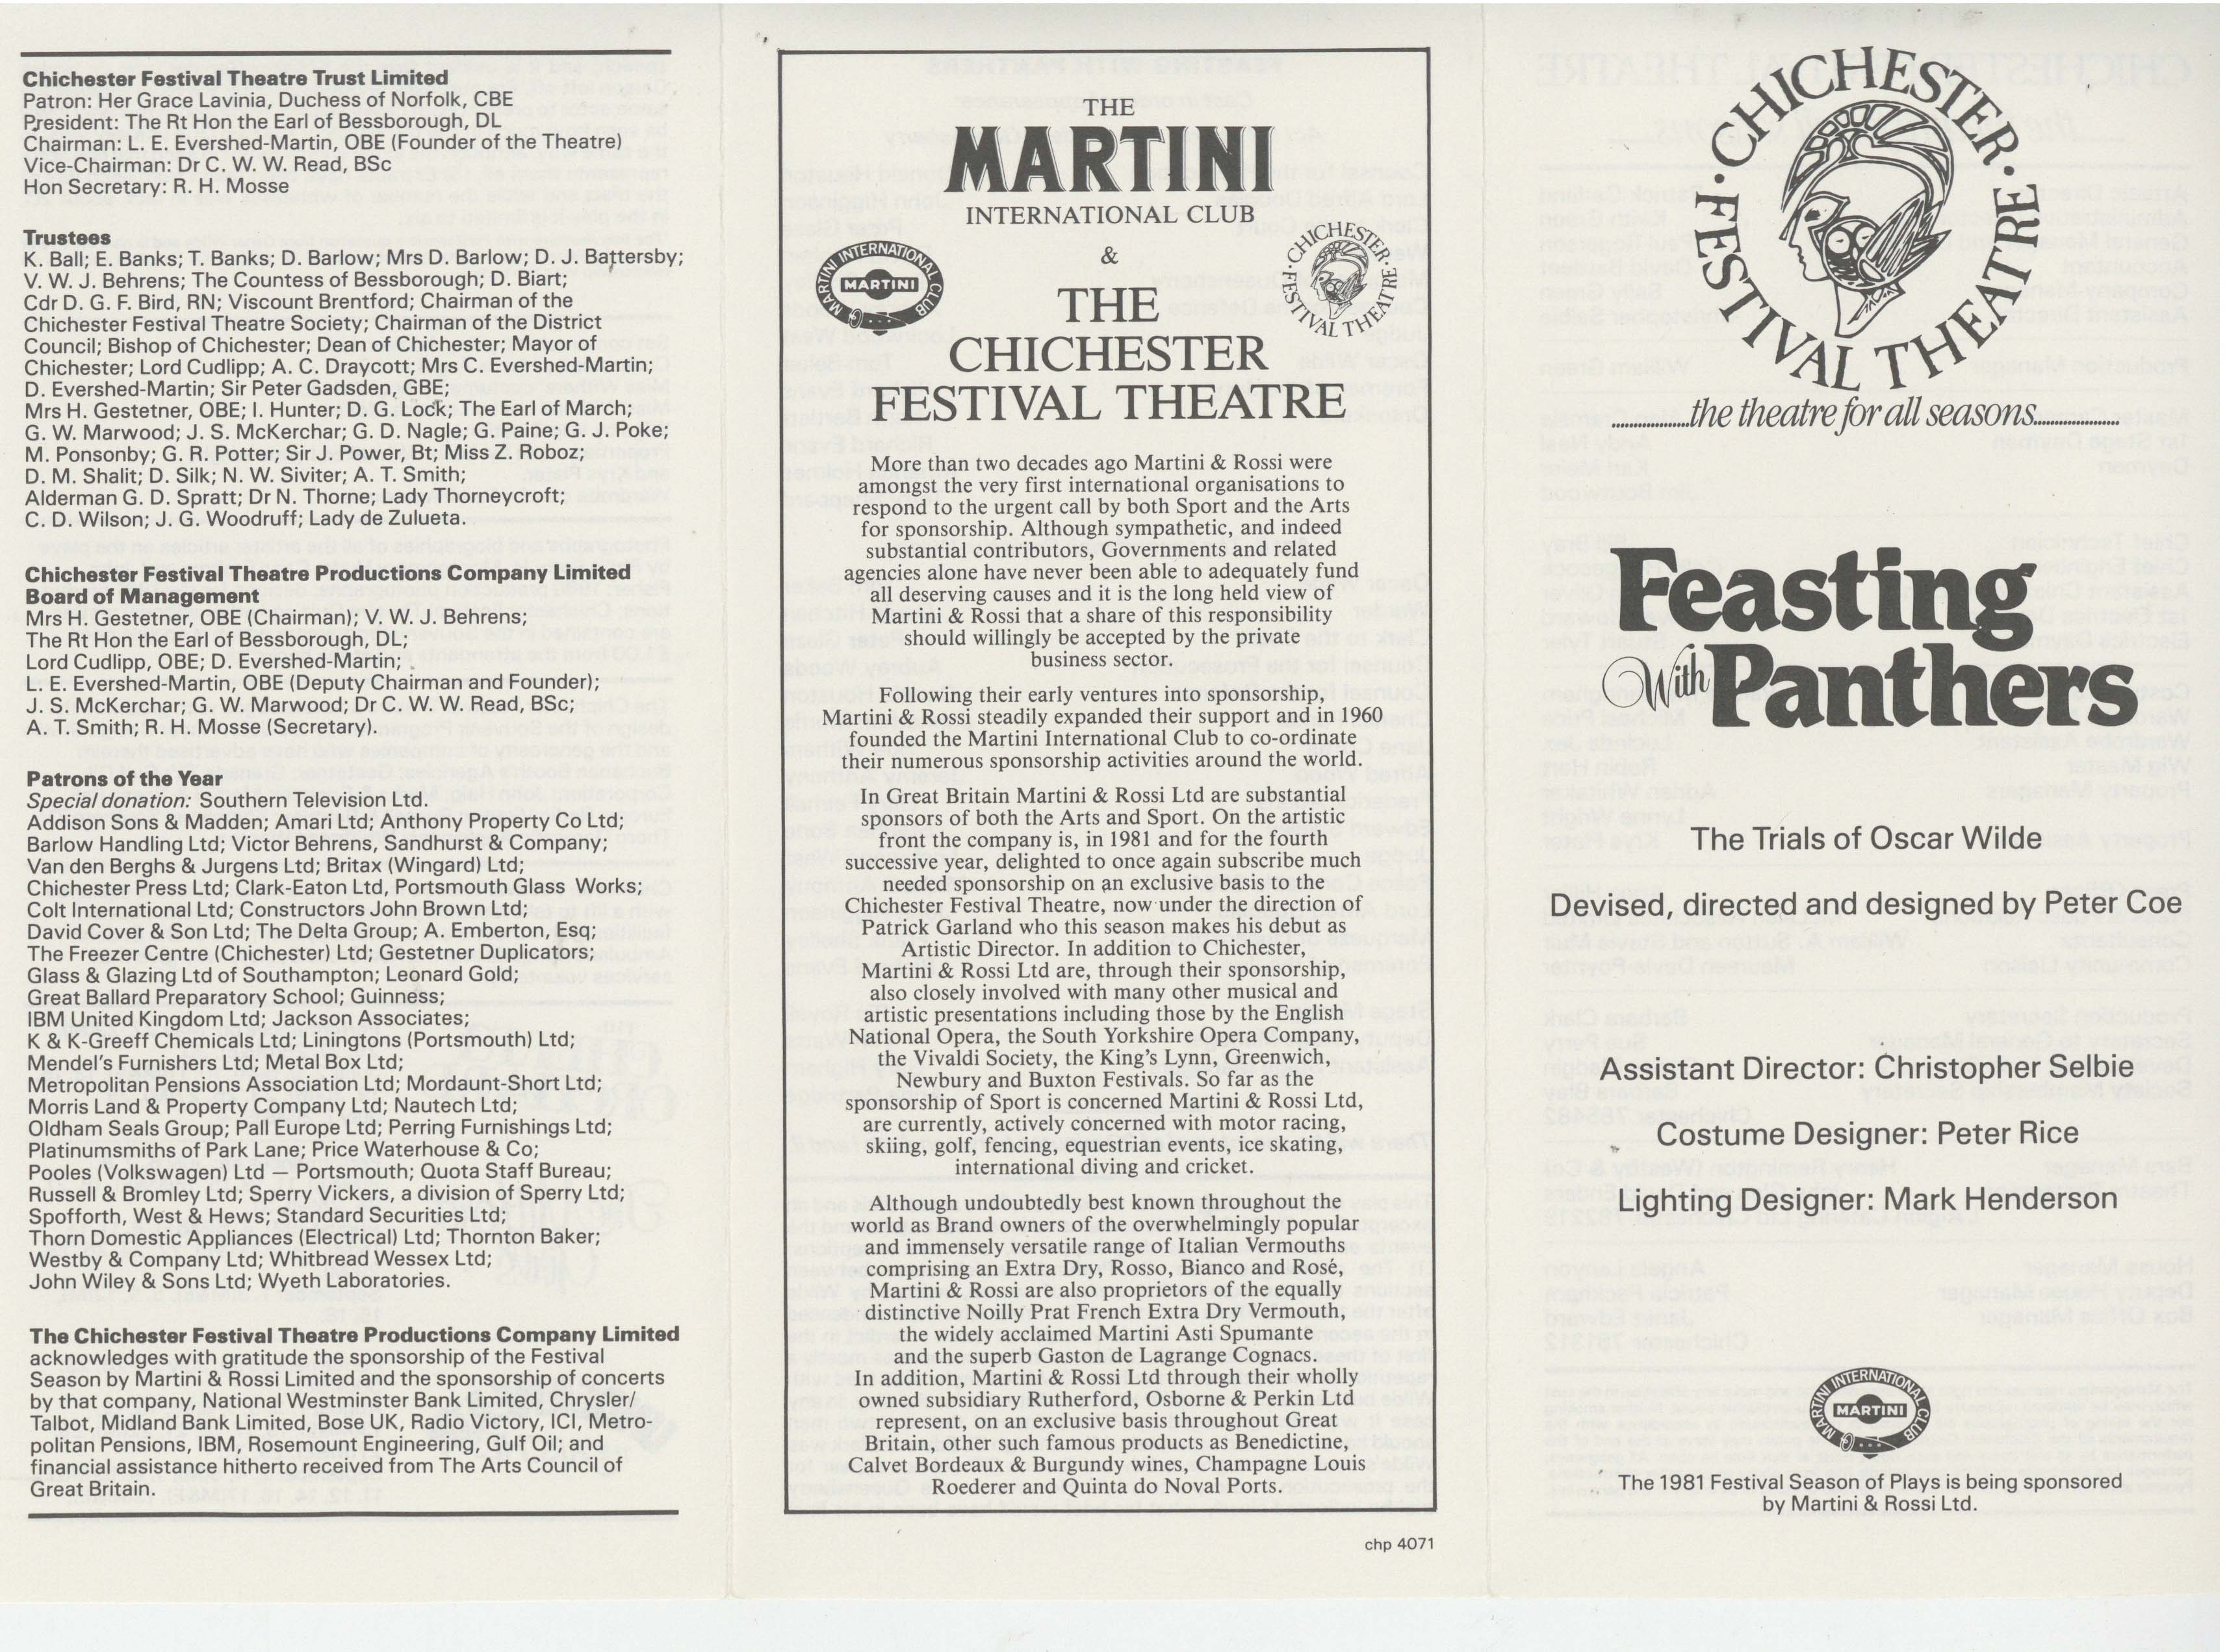 Blueprints festival theatre auditorium 1962 pass it on cast list feasting with panthers 1981 1 of 2 malvernweather Image collections